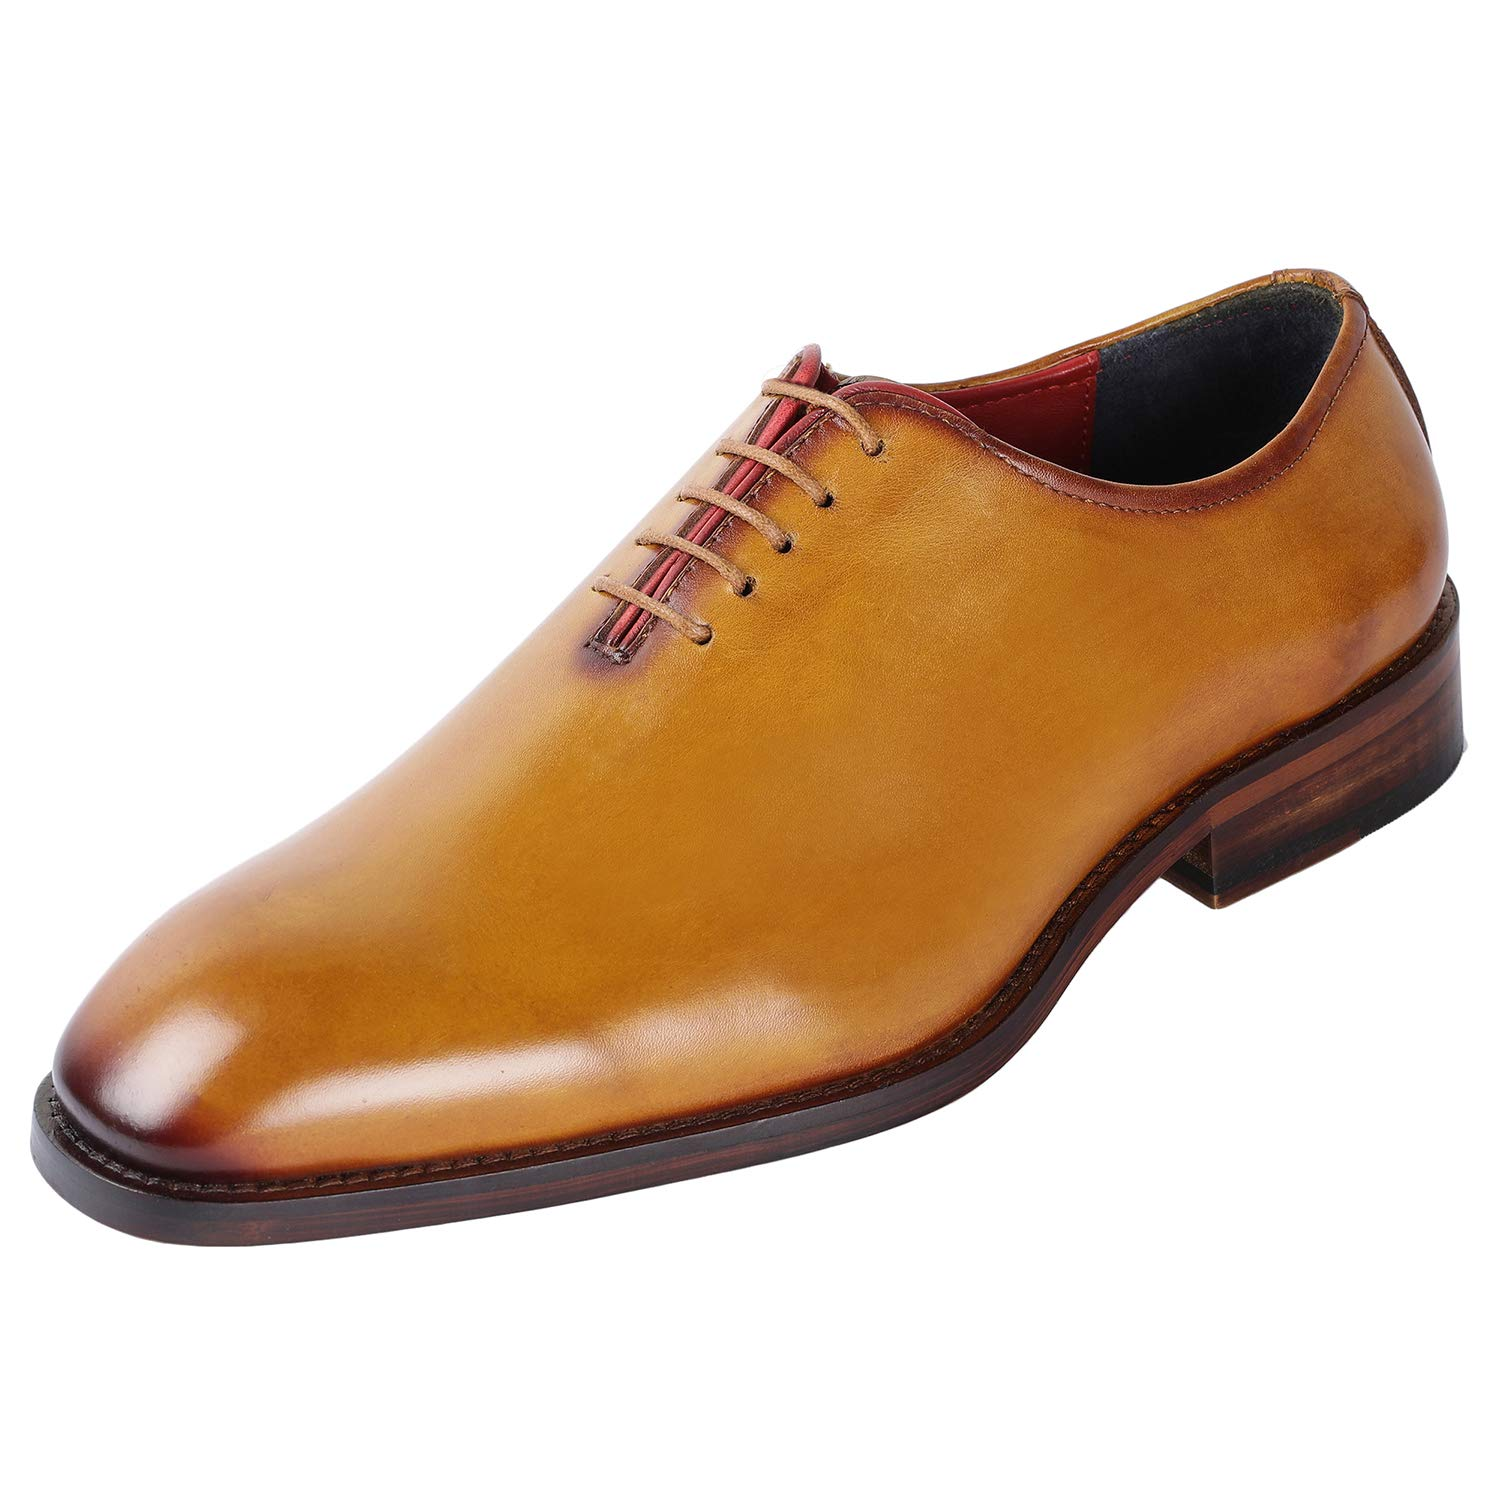 most desirable fashion new specials latest trends Lethato Handcrafted Wholecut Oxford Men's Genuine Leather Lace Up Dress  Shoes